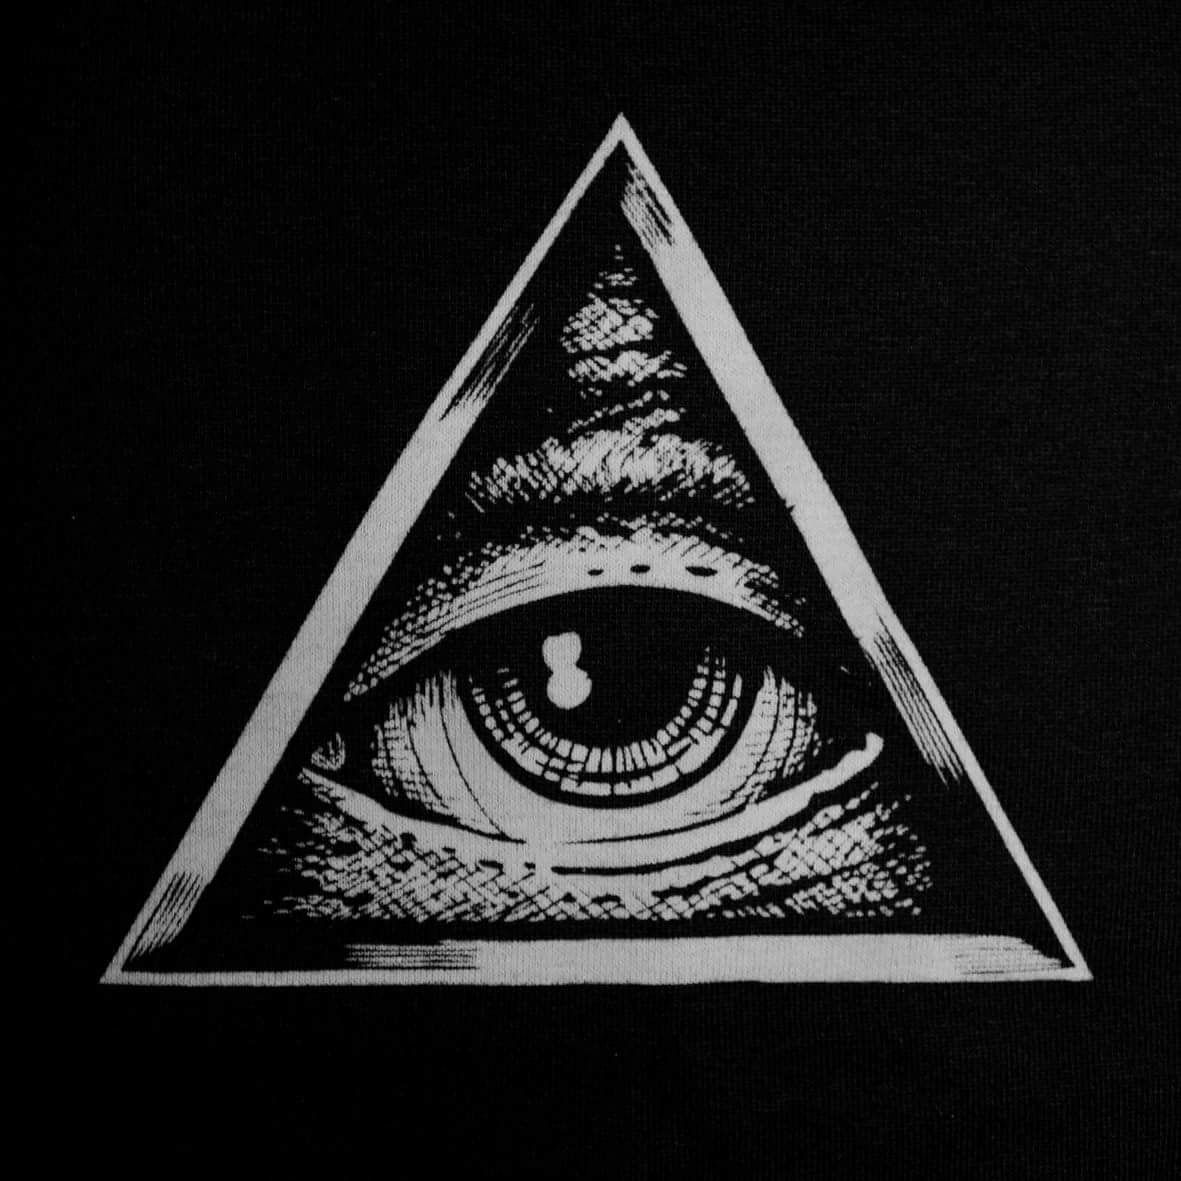 1181x1181 Pin by emzachoo on Hand or neck tattoo | Pinterest | All seeing eye ...